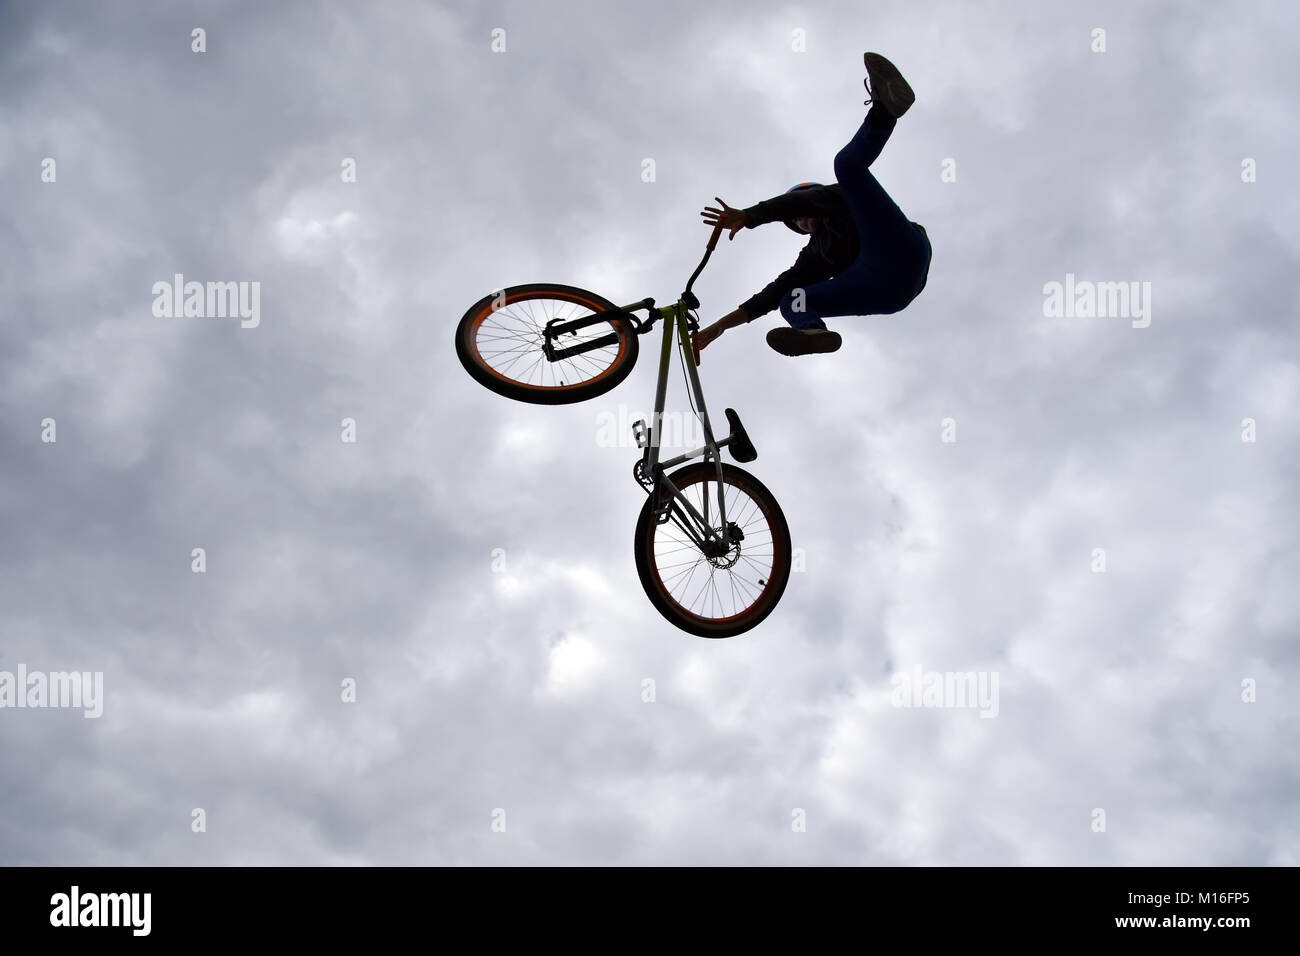 Silhouette of a young man freestyle stunt cyclist flying in the sky performing stunt jump from a skatepark ramp Stock Photo